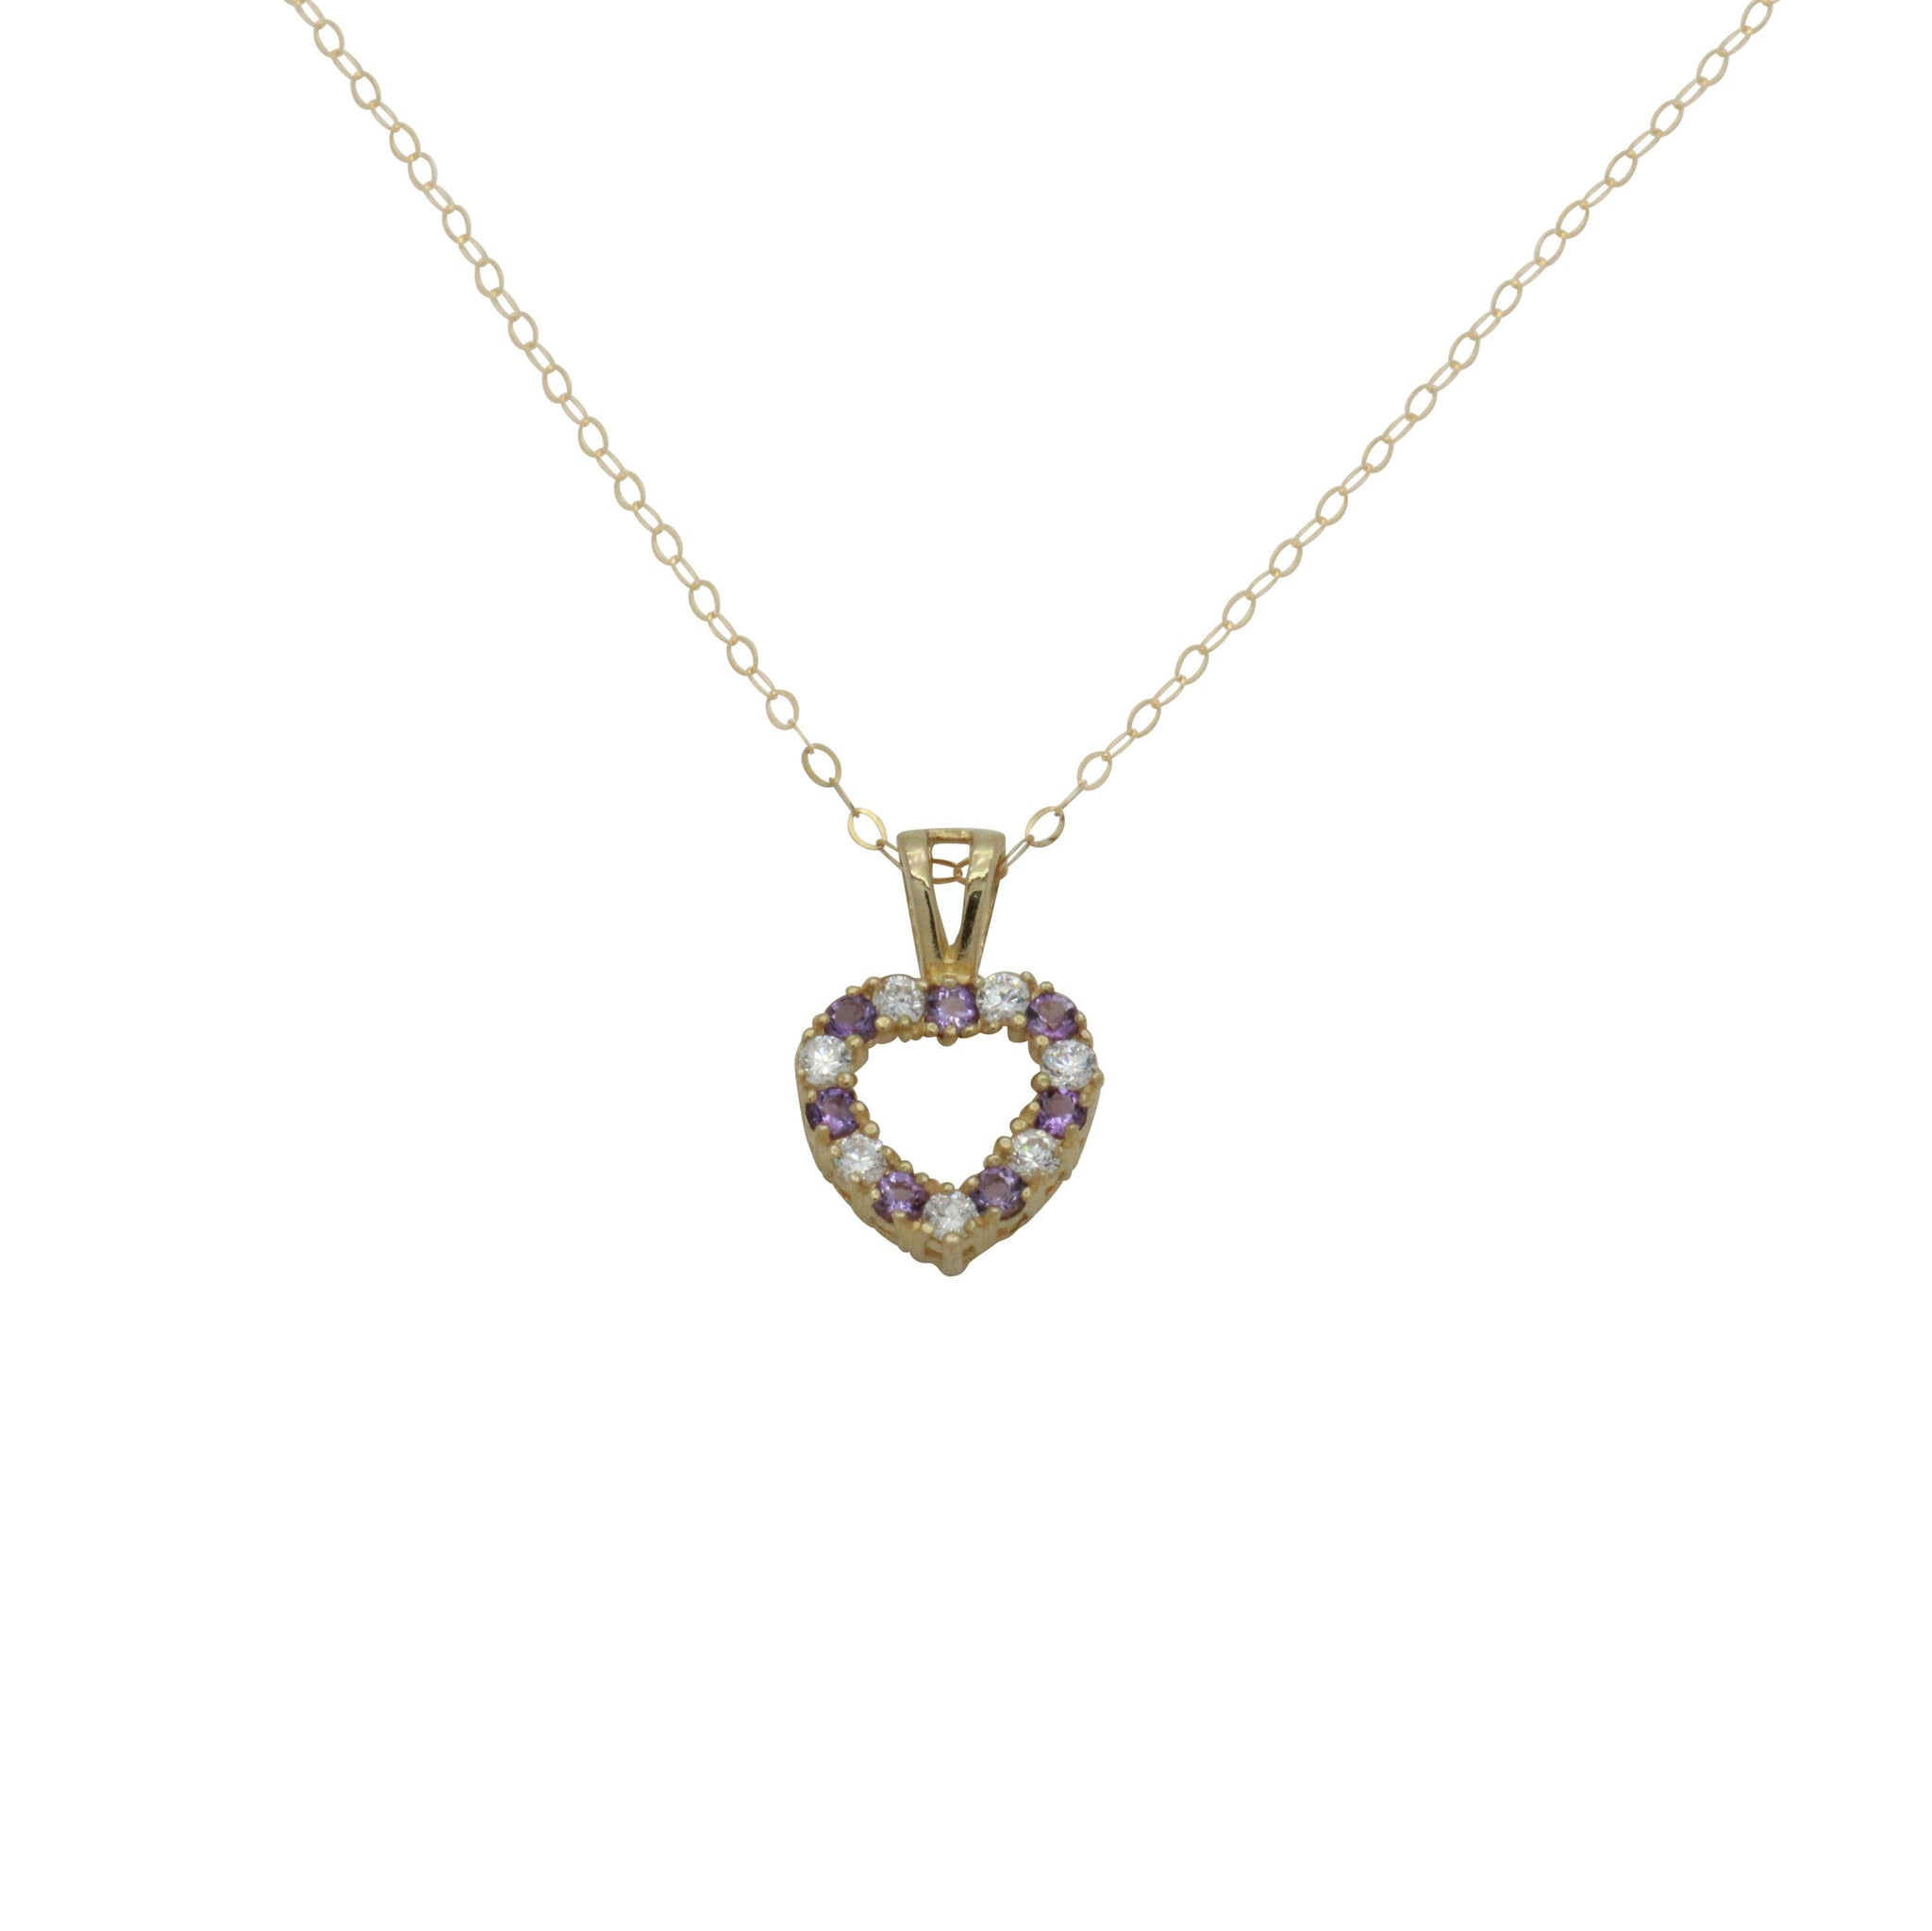 Amethyst Necklace, Cubic Zirconia, Amethyst Jewellery, CZ Necklace, Gold Necklace, 9ct Amethyst Heart, Gold Amethyst, Gemstone Pendant, Birthstone Necklace, Birthstone Pendant, Amethyst Stone, Amethyst Pendants, Birthstone Jewellery